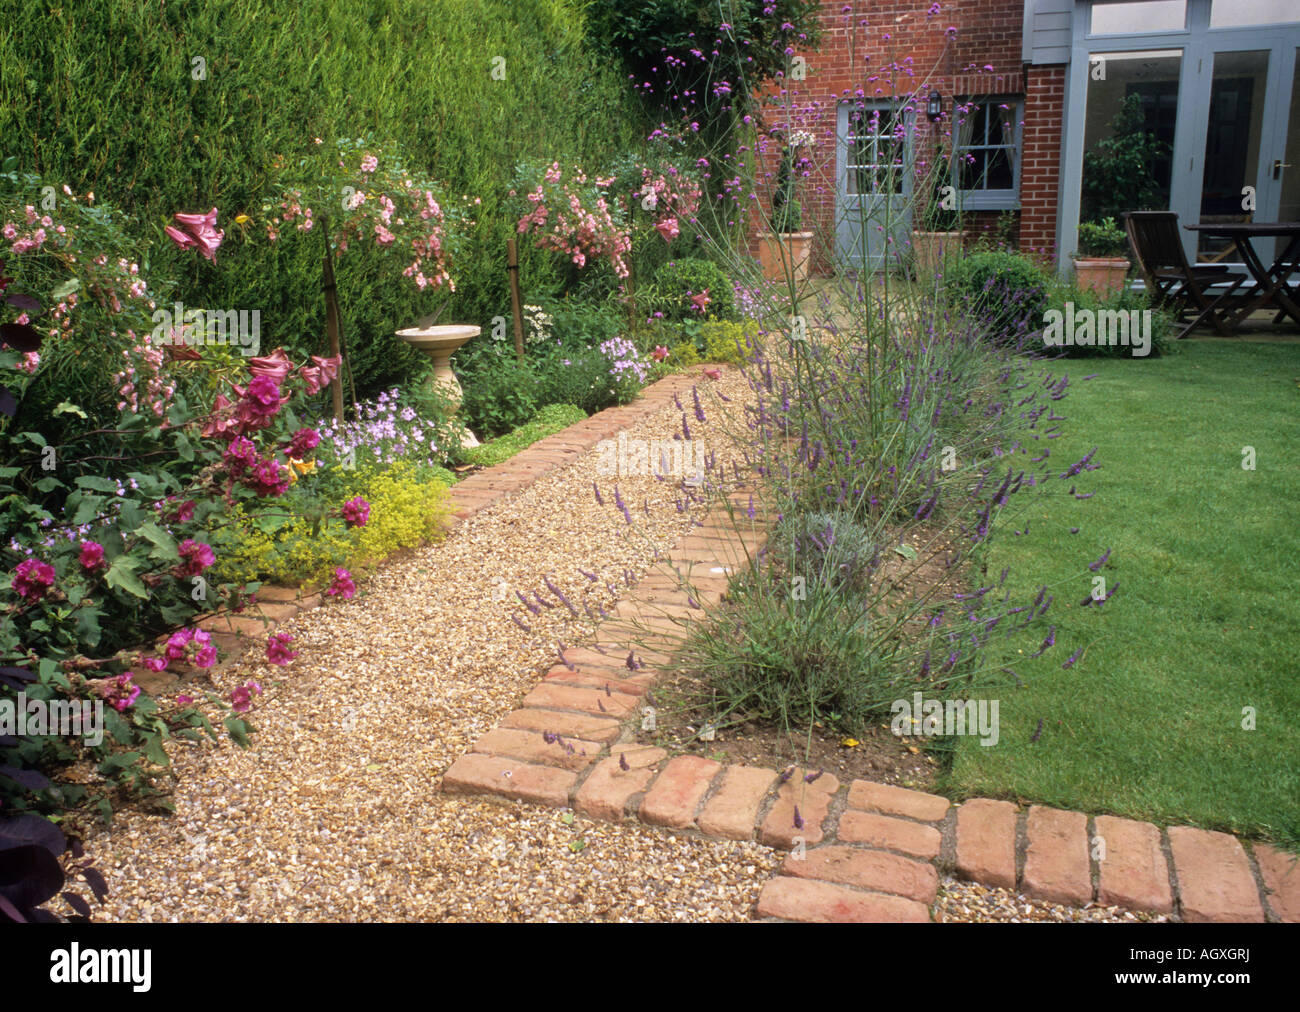 Path Gravel Brick Small Back Garden Design Lawn House Border Flower Hedge Evergreen